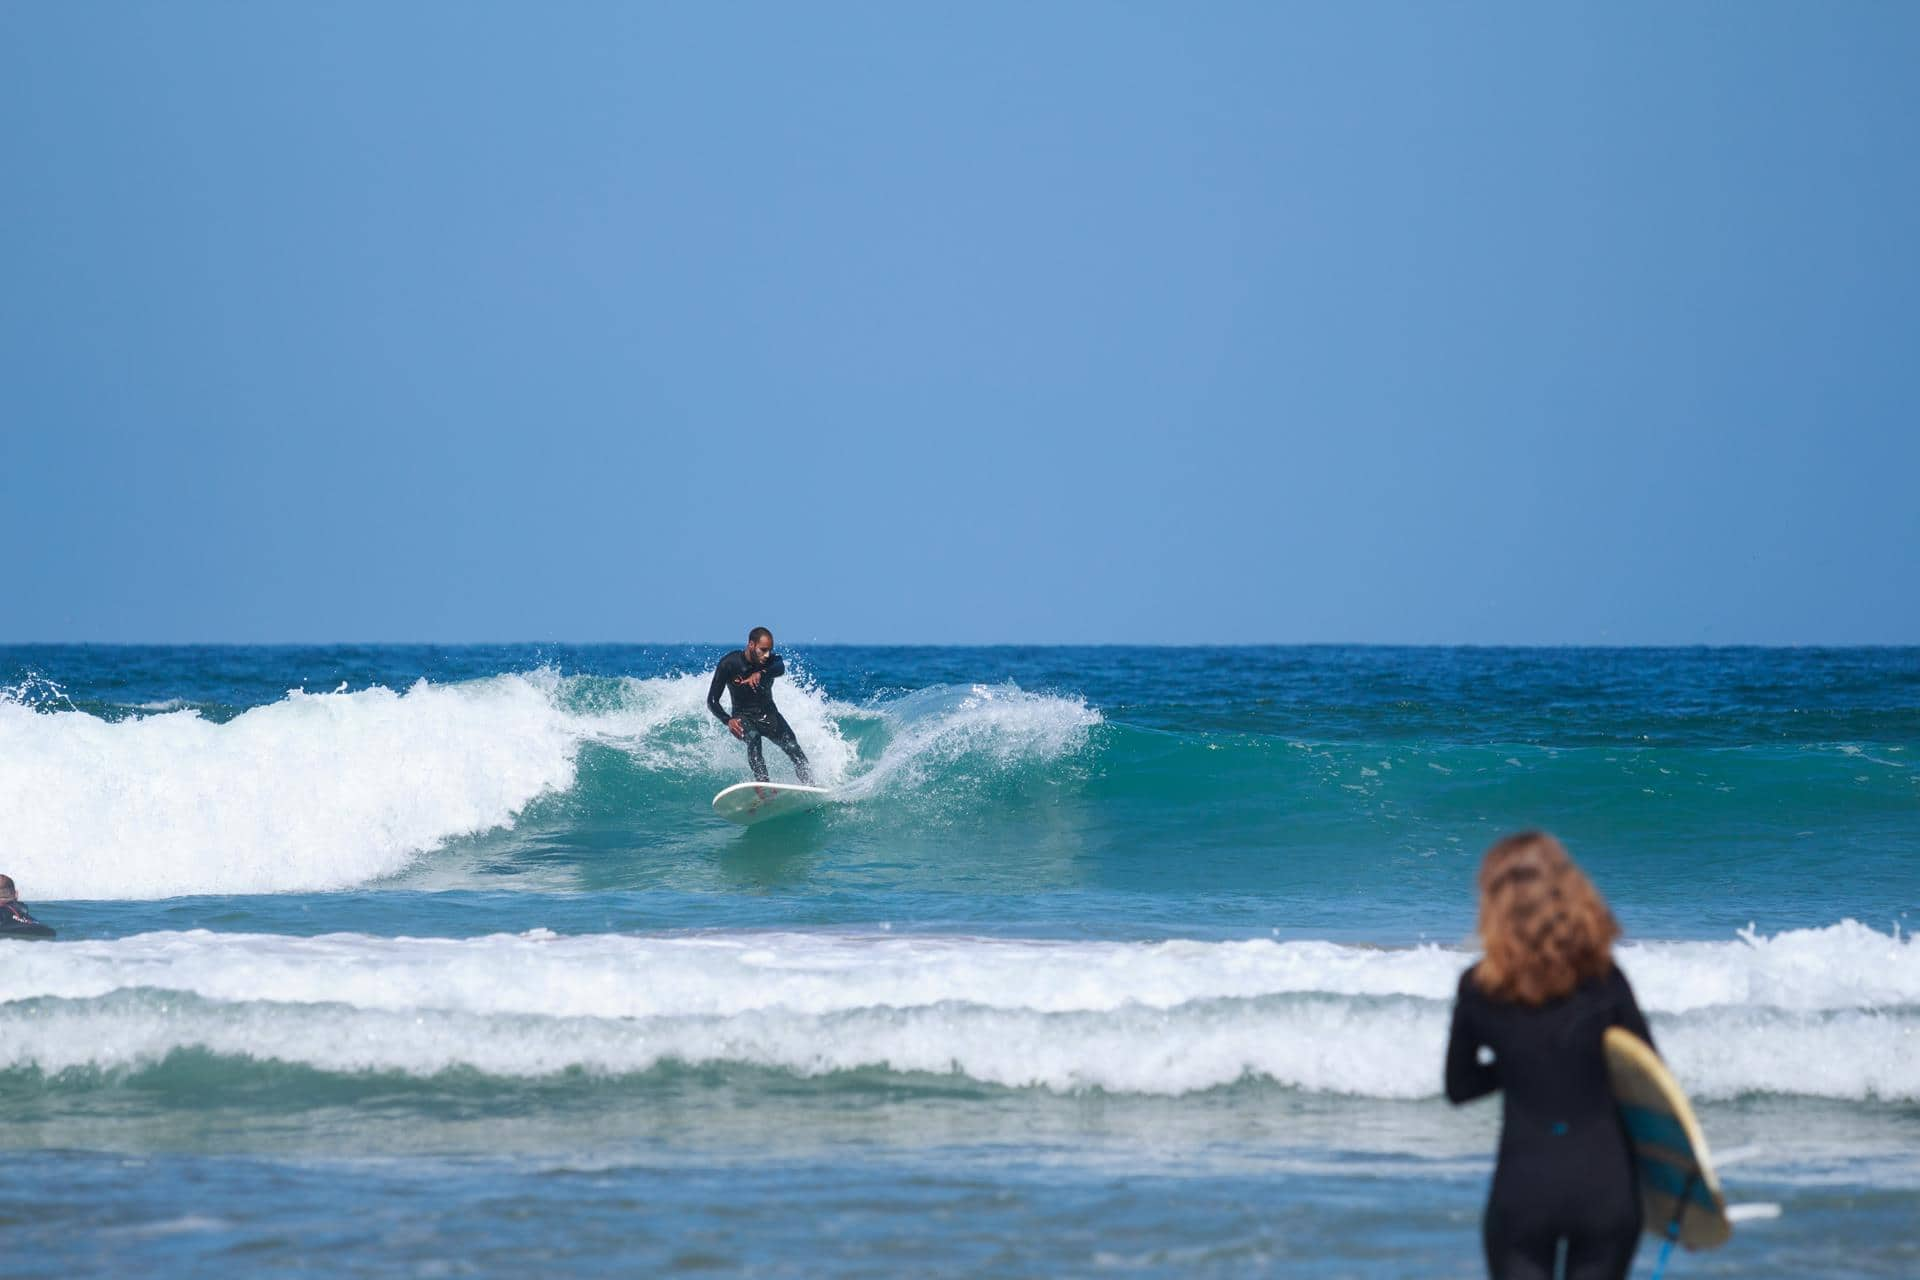 couple surfing waves in blue waves